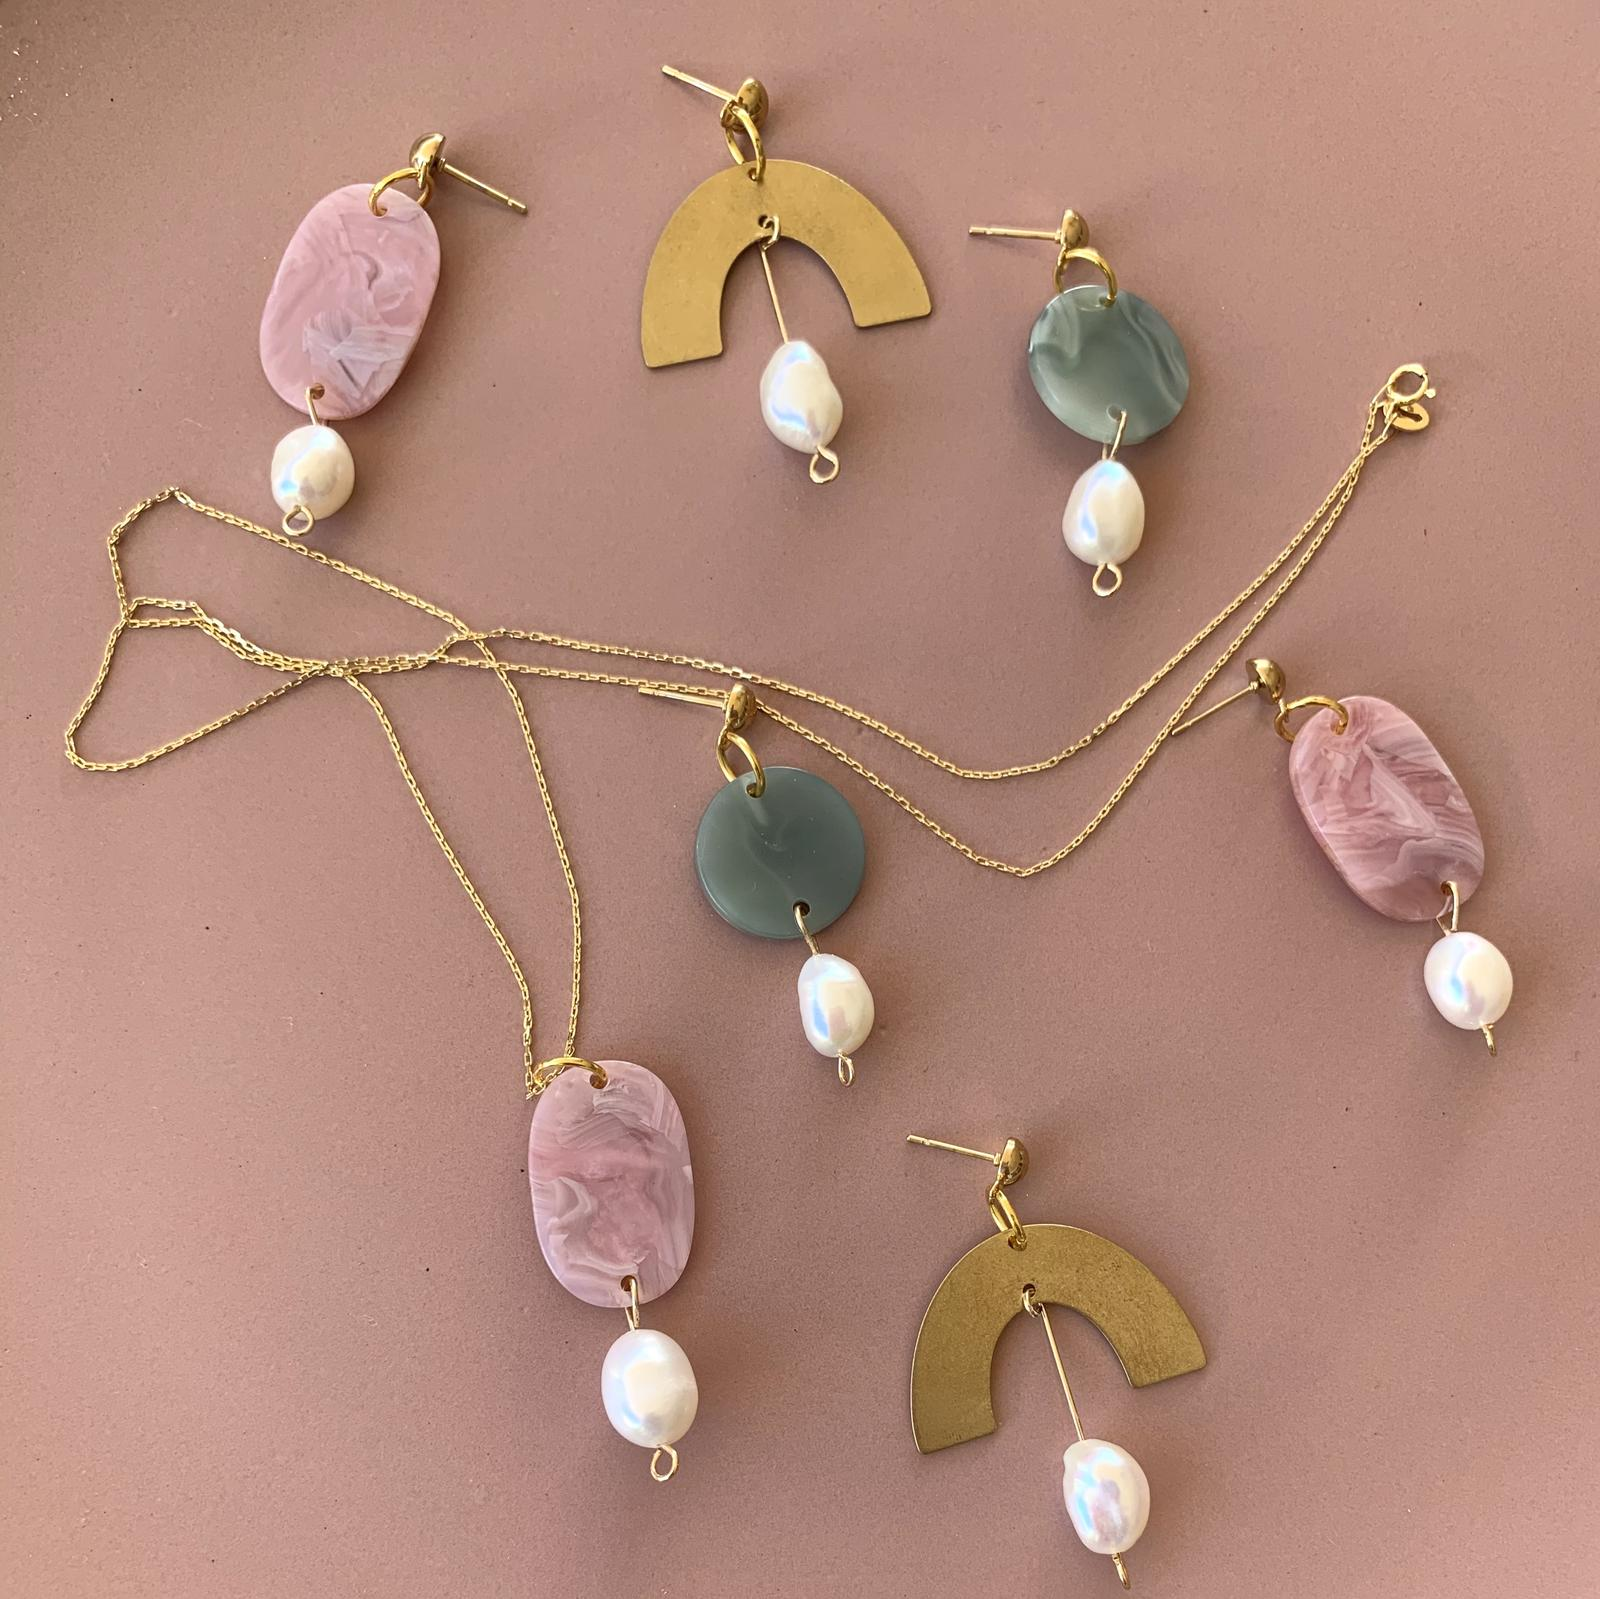 New pearl & acrylic range of earrings & necklaces